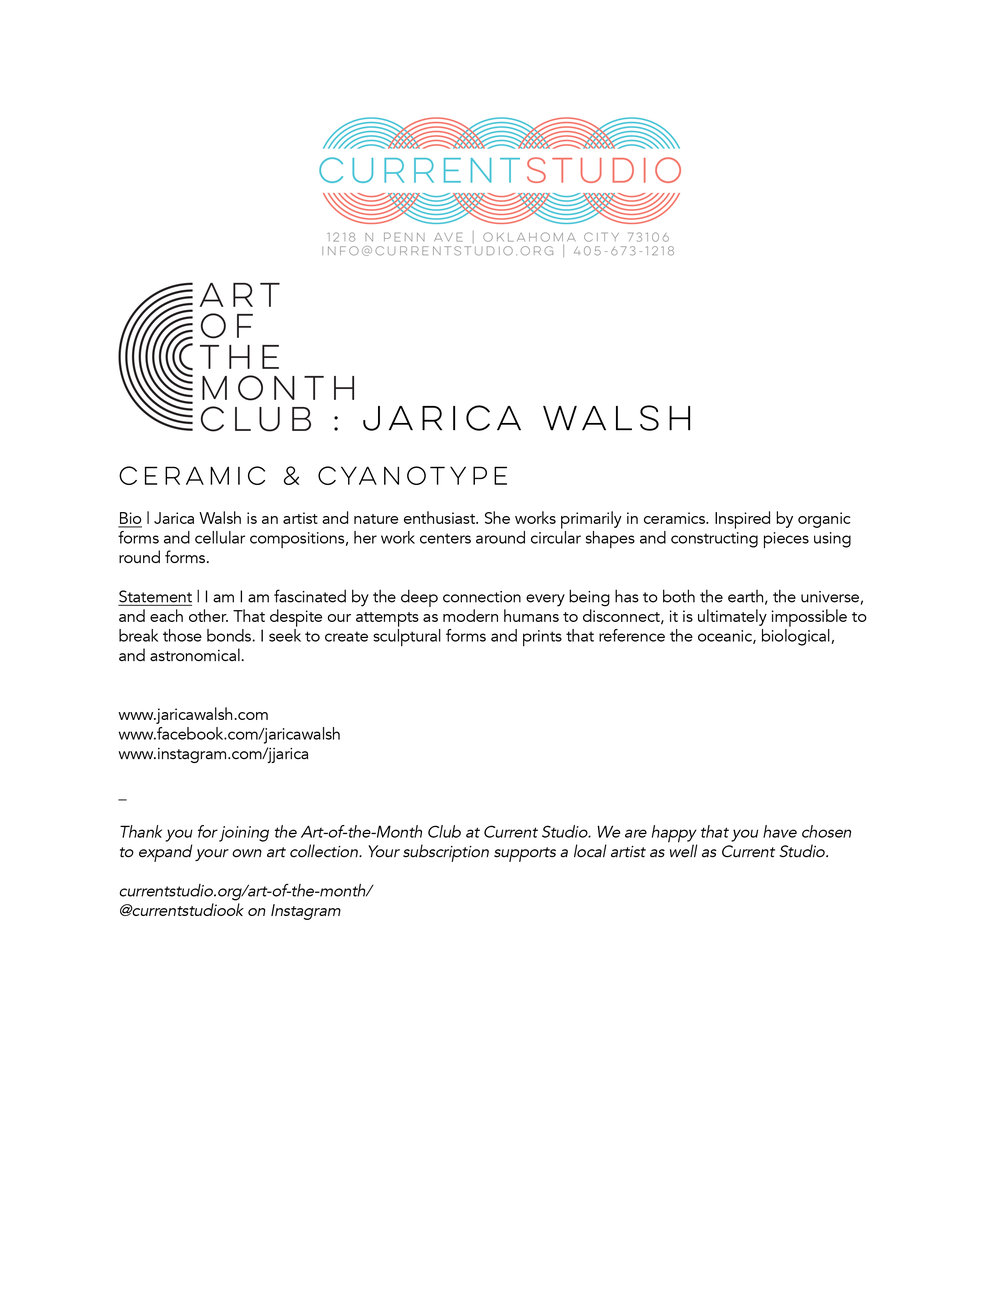 art of the month artist sheet - jarica walsh.jpg